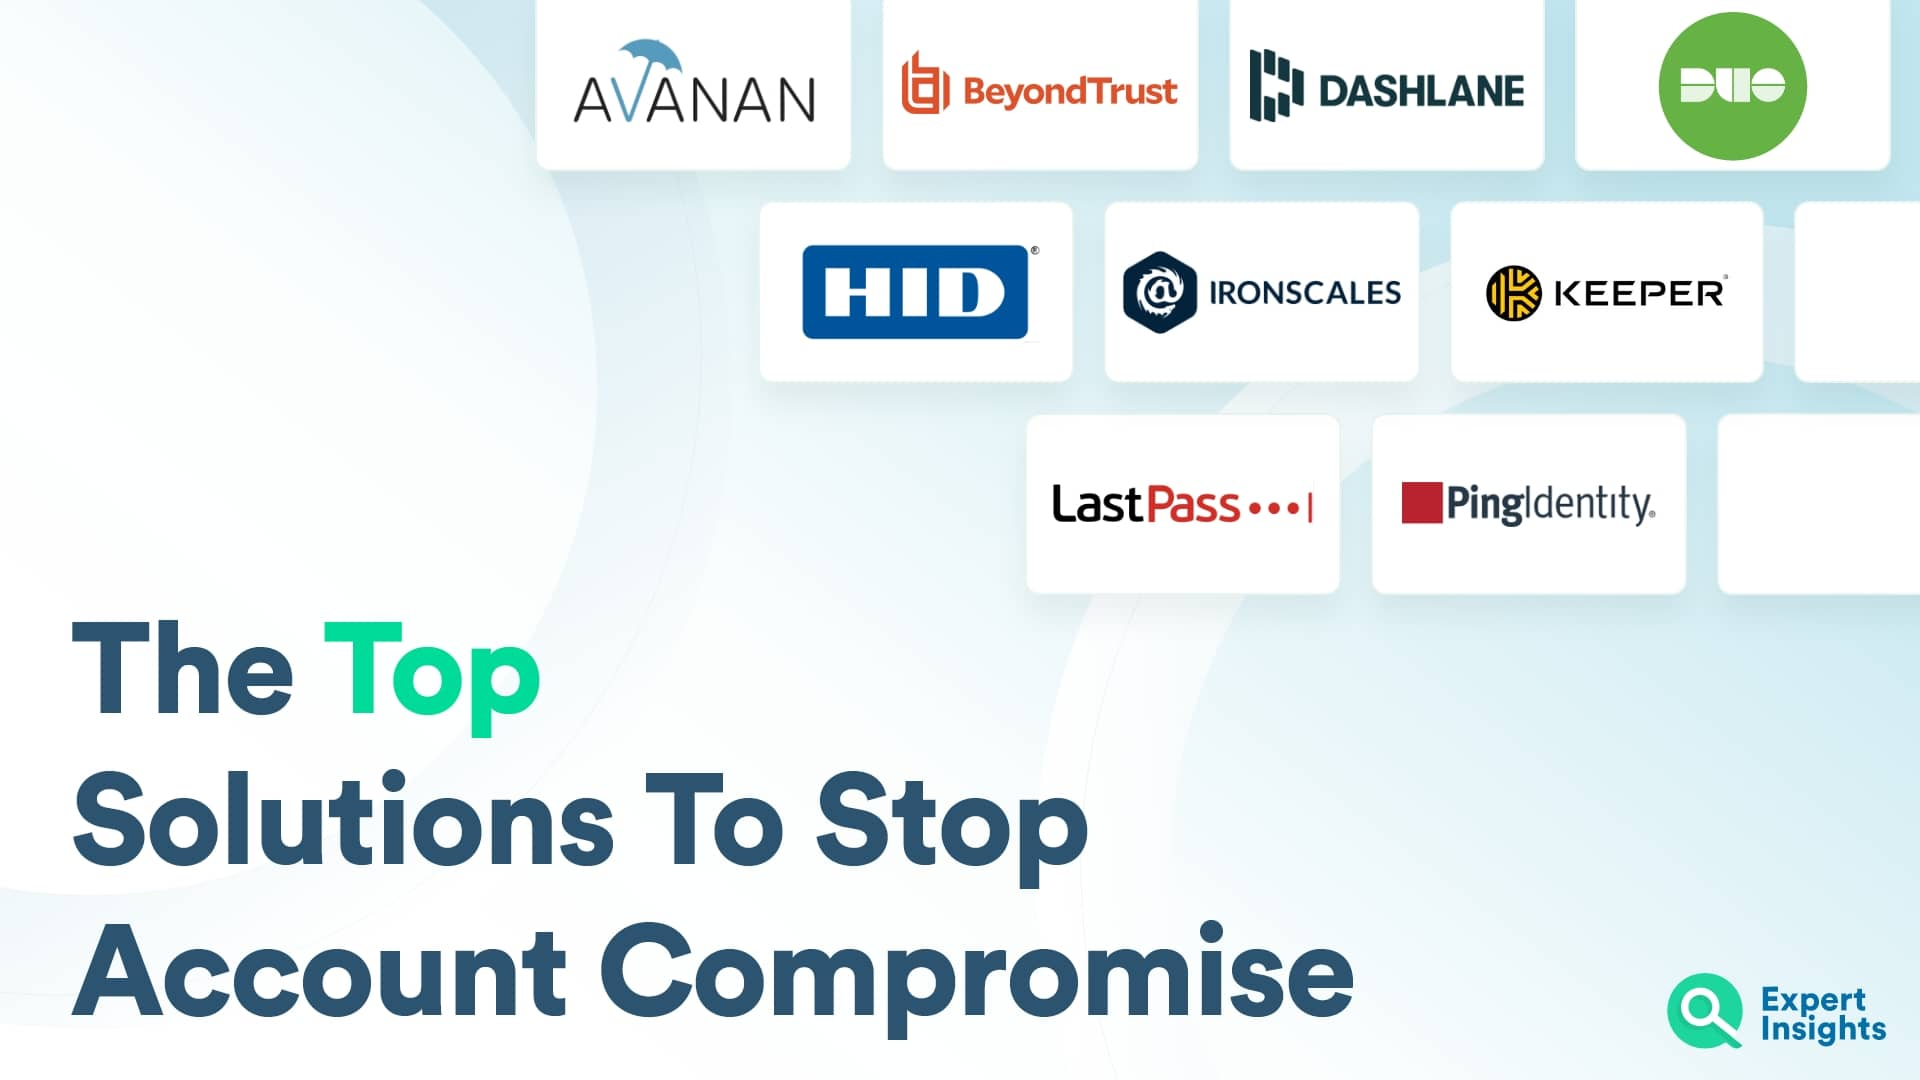 The Top Solutions To Stop Account Compromise - Expert Insights